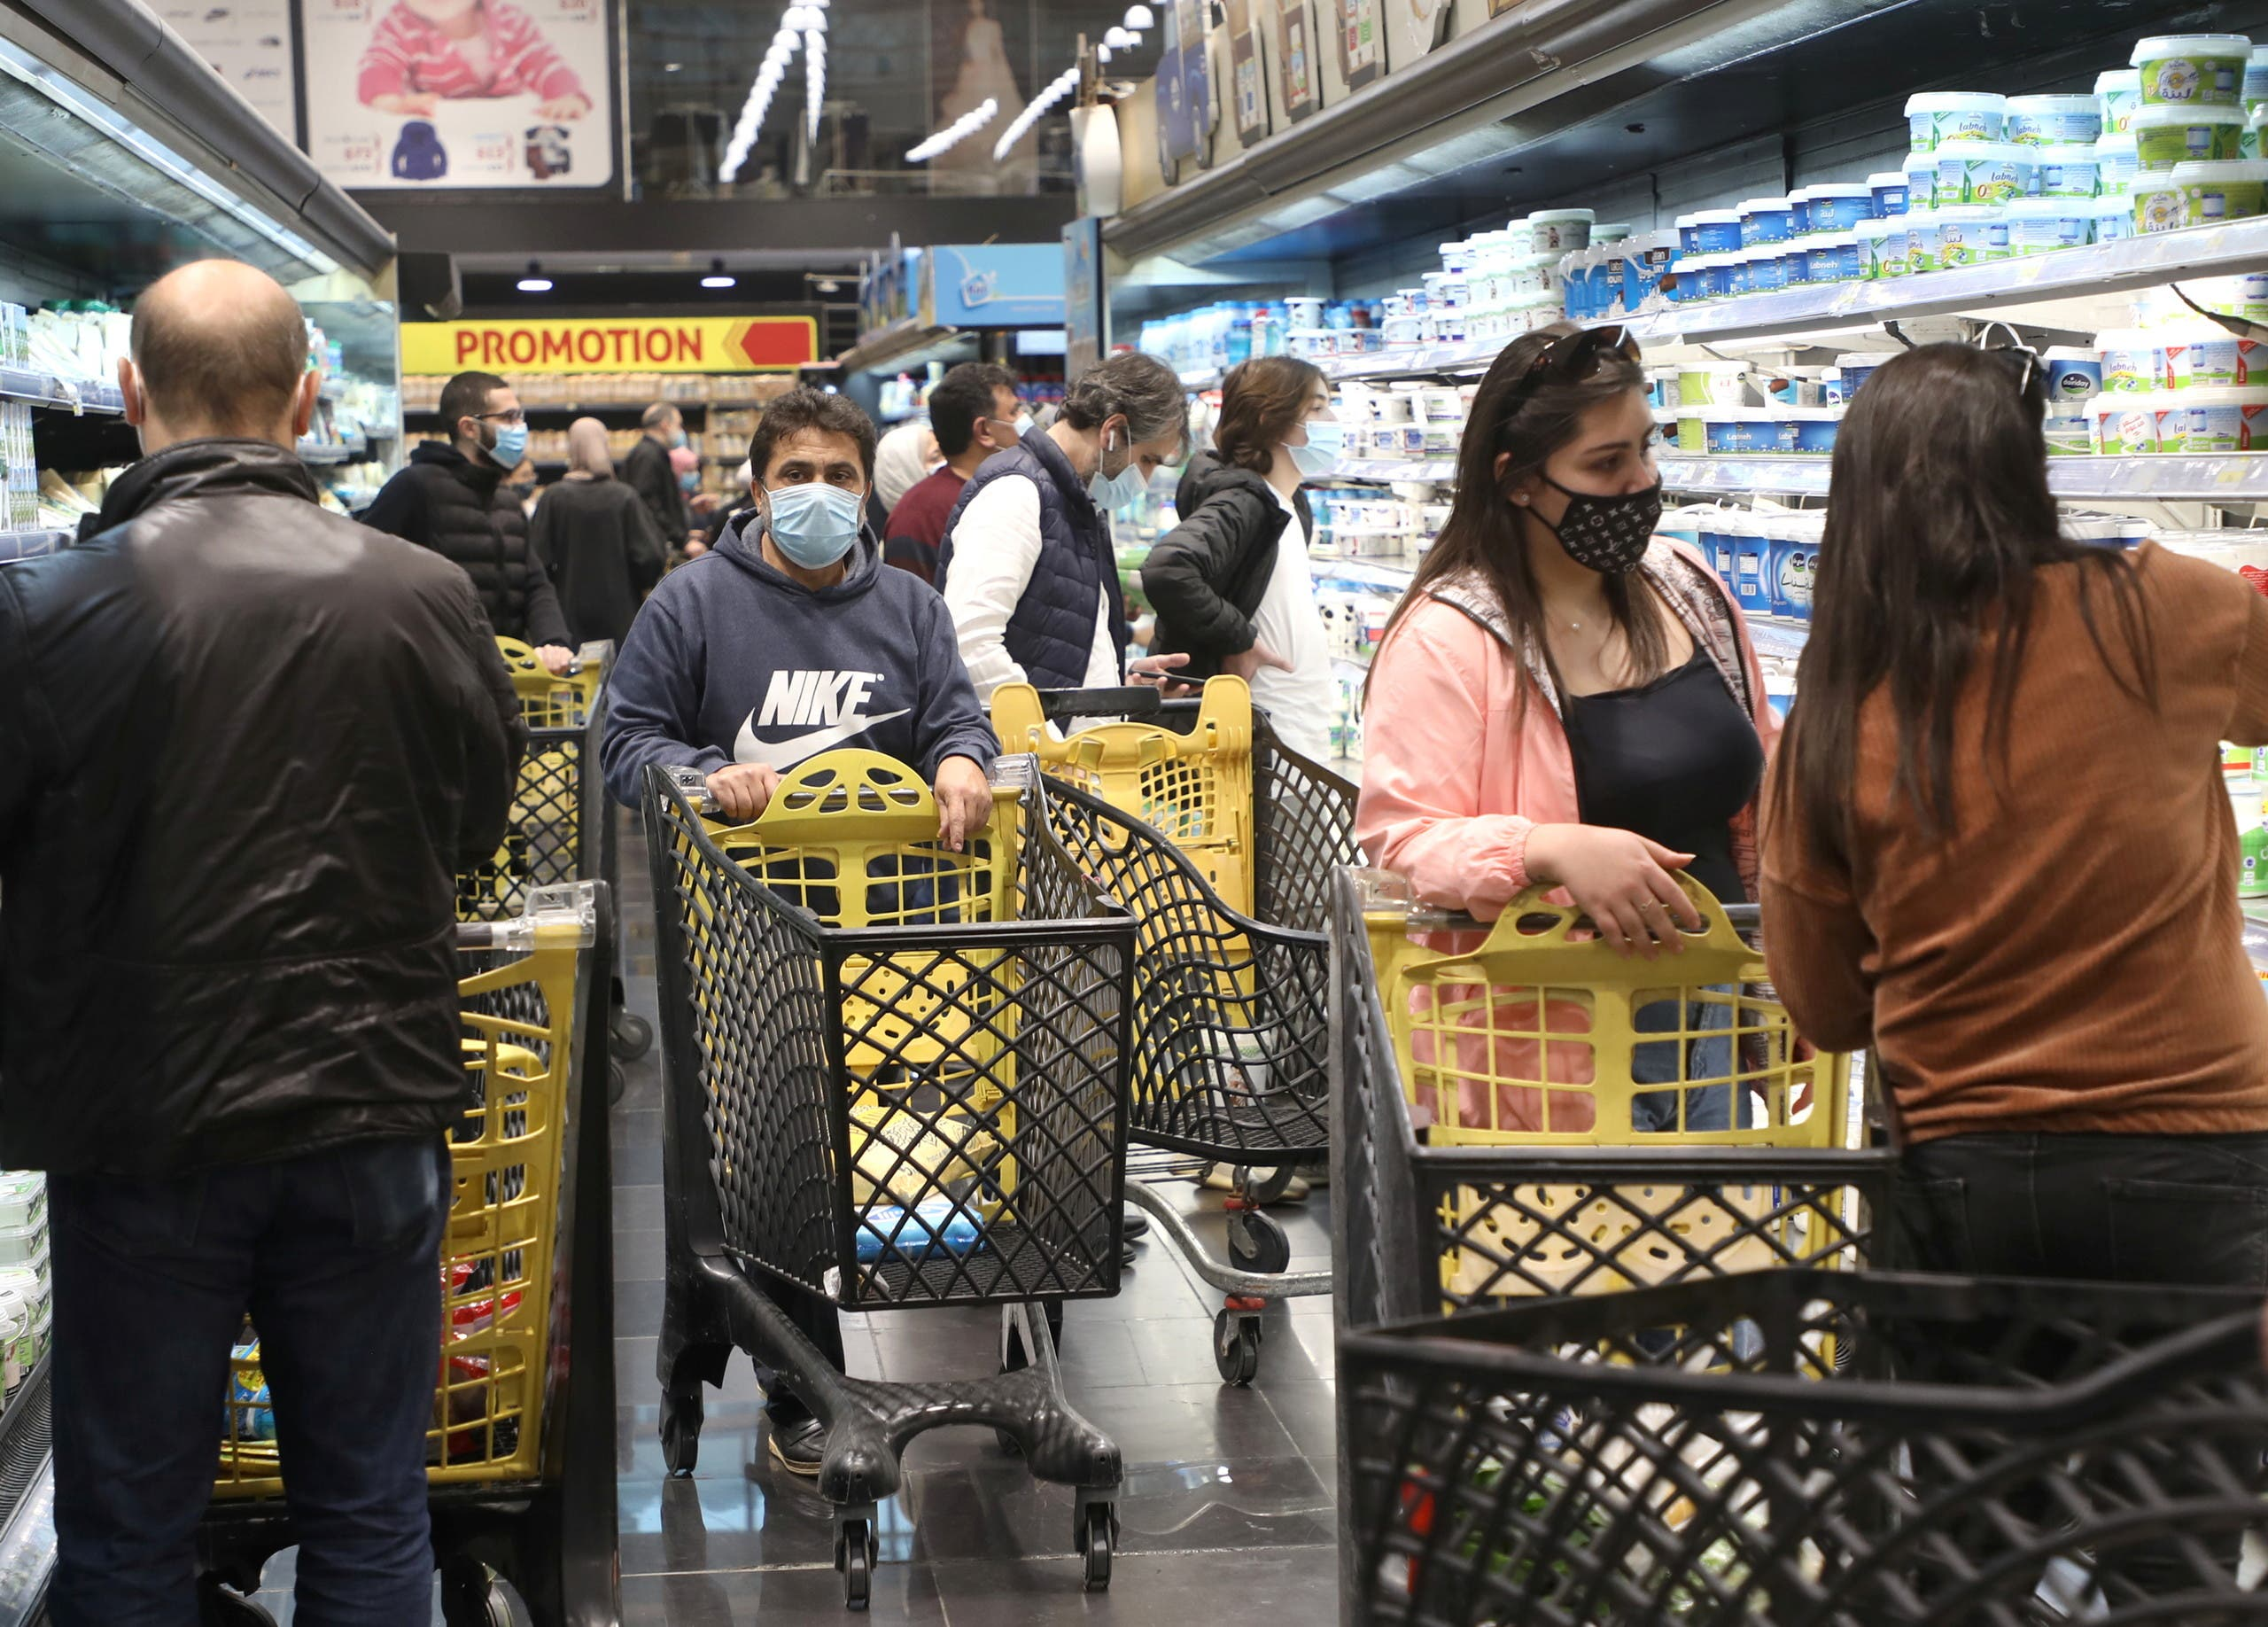 People shop at a supermarket ahead of a tightened lockdown and a 24-hour curfew to curb the spread the coronavirus disease (COVID-19) outbreak in Beirut. (Reuters)